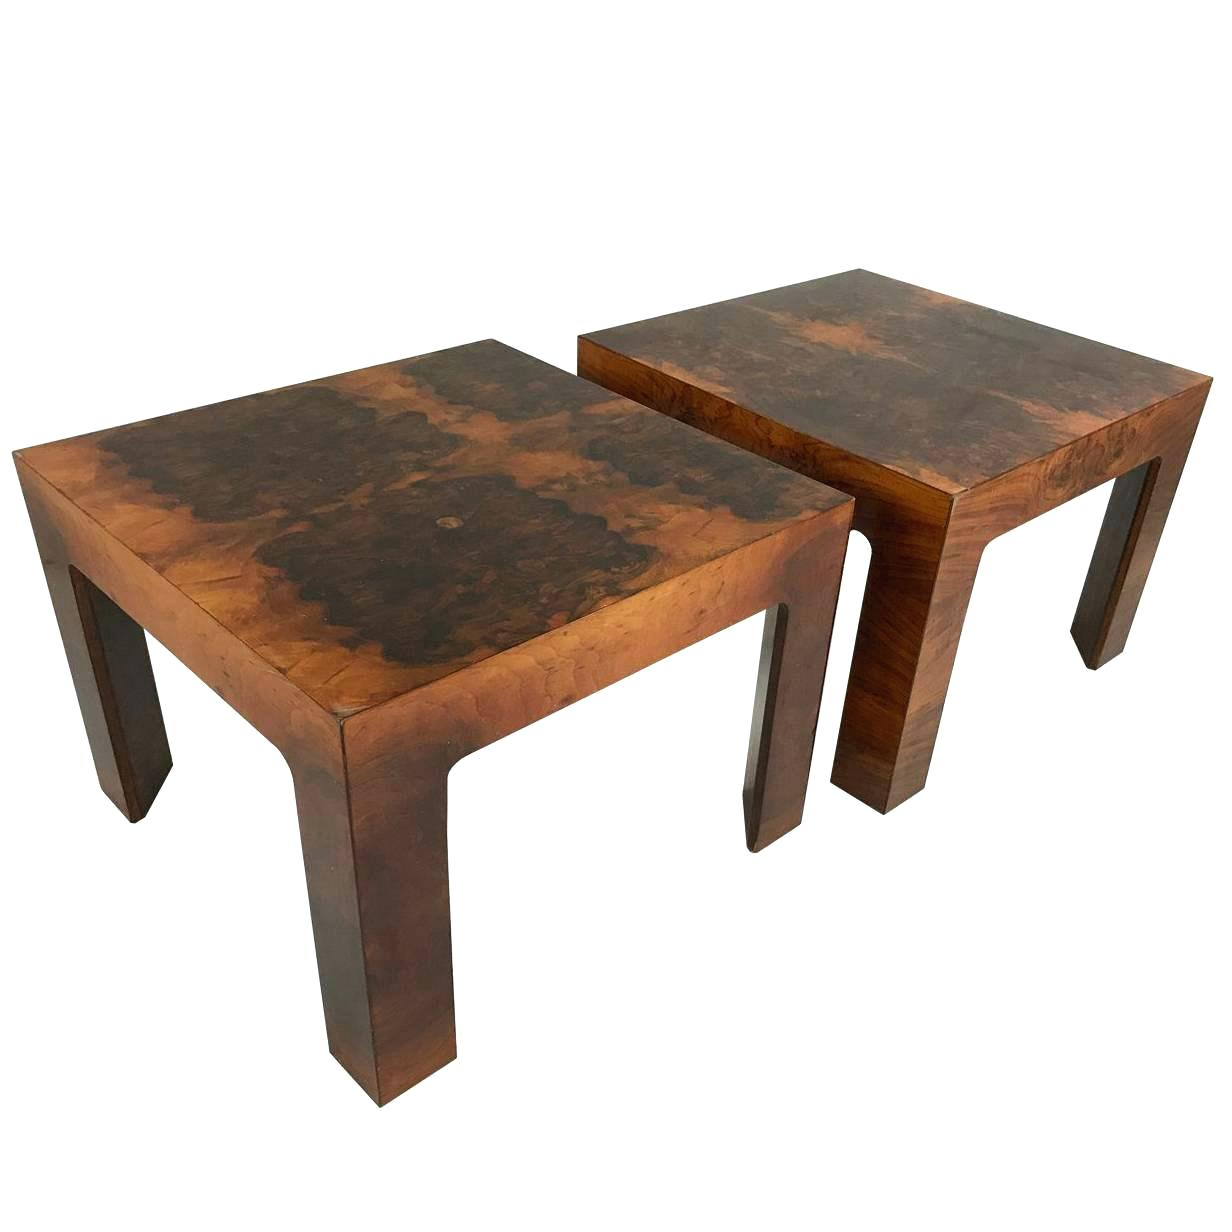 burl wood furniture table sensational pair side tables the style for antique accent mosaic patio coffee barn door ideas light leg extensions laptop wooden legs and bases glass